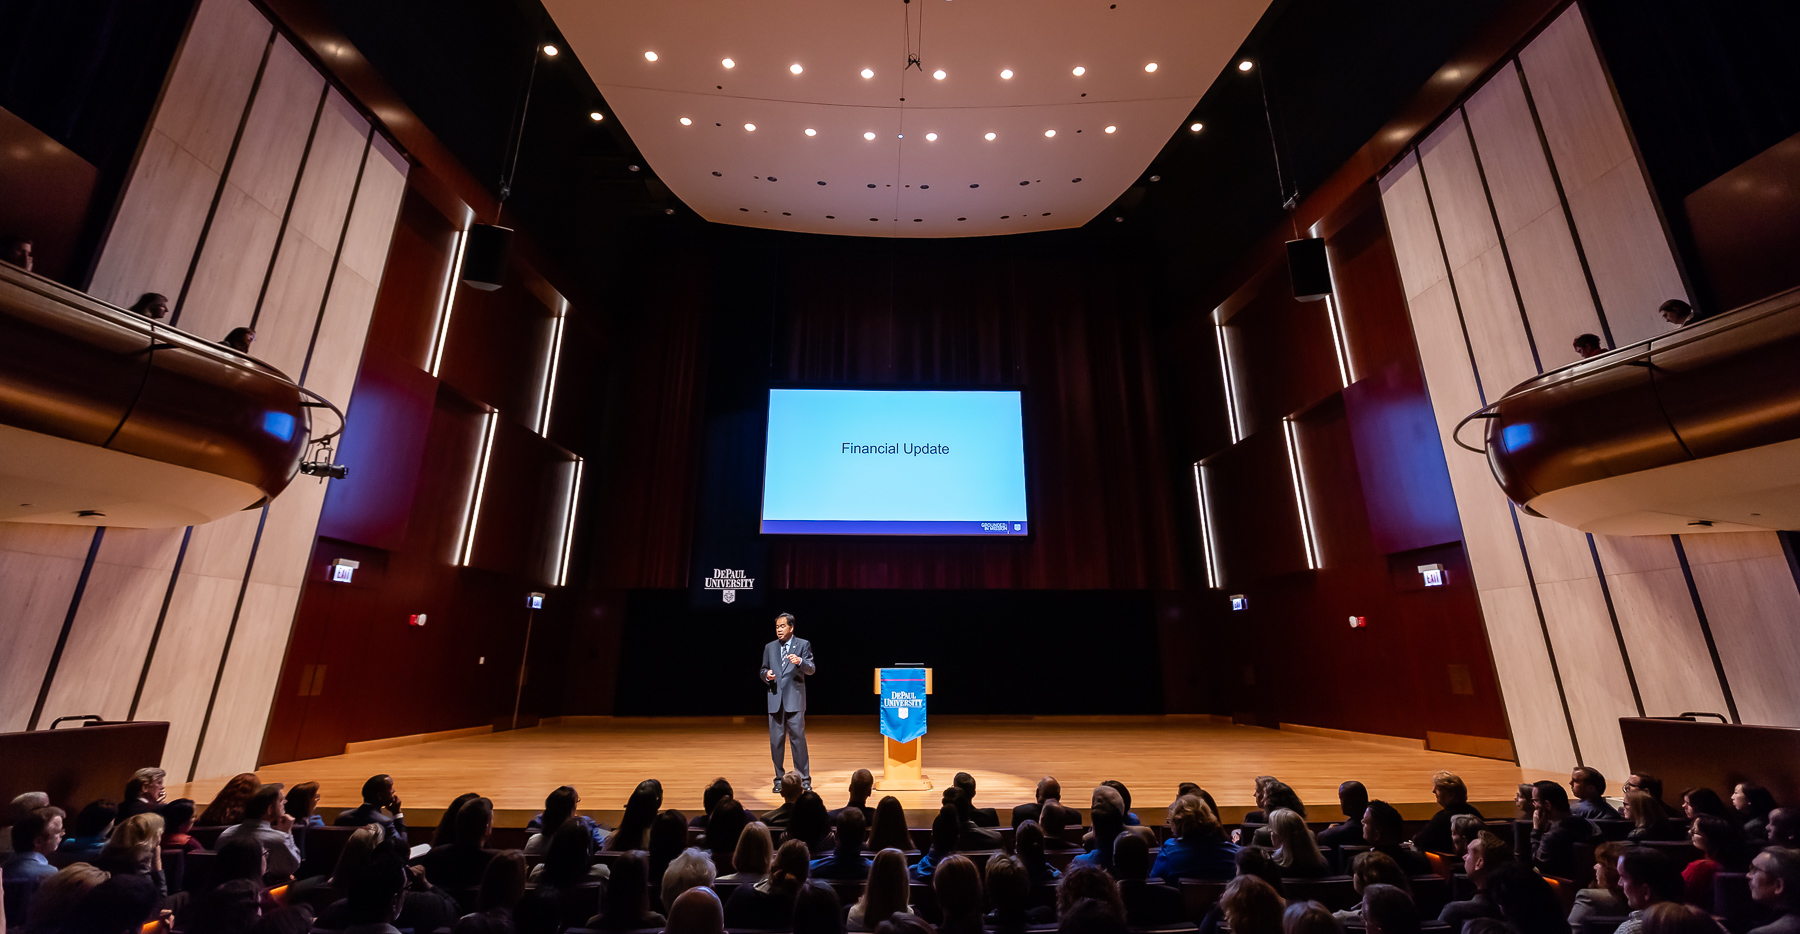 Dr. Esteban quipped that this was the second year in a row to deliver the address in a new DePaul facility. (DePaul University/Jeff Carrion)​